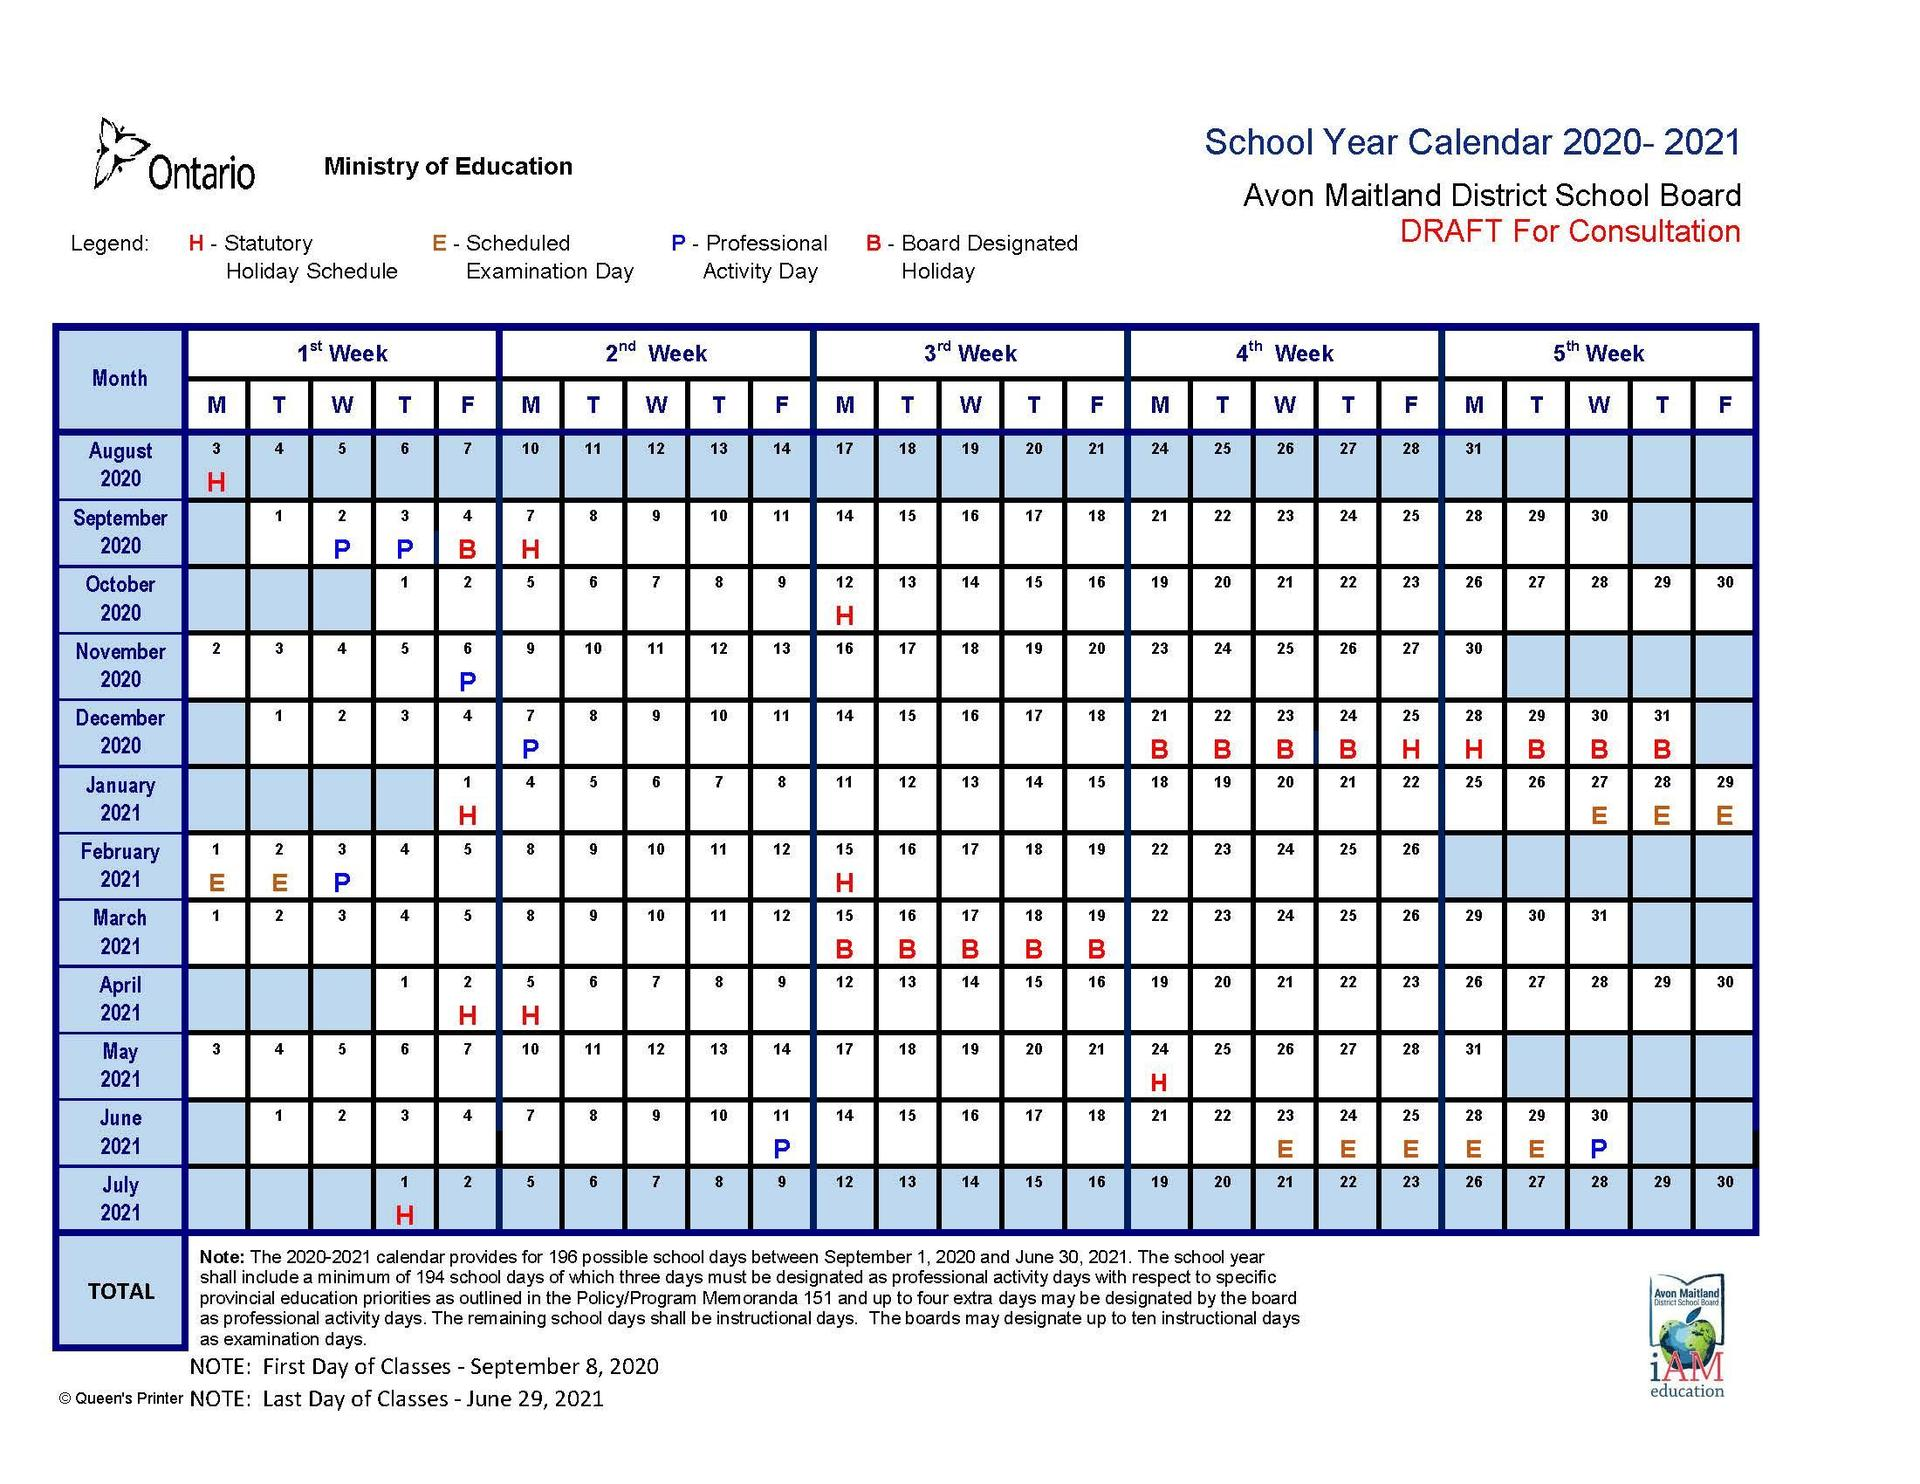 draft school year calendar for the 2020-2021 school year outlining pa days, holidays and exam days